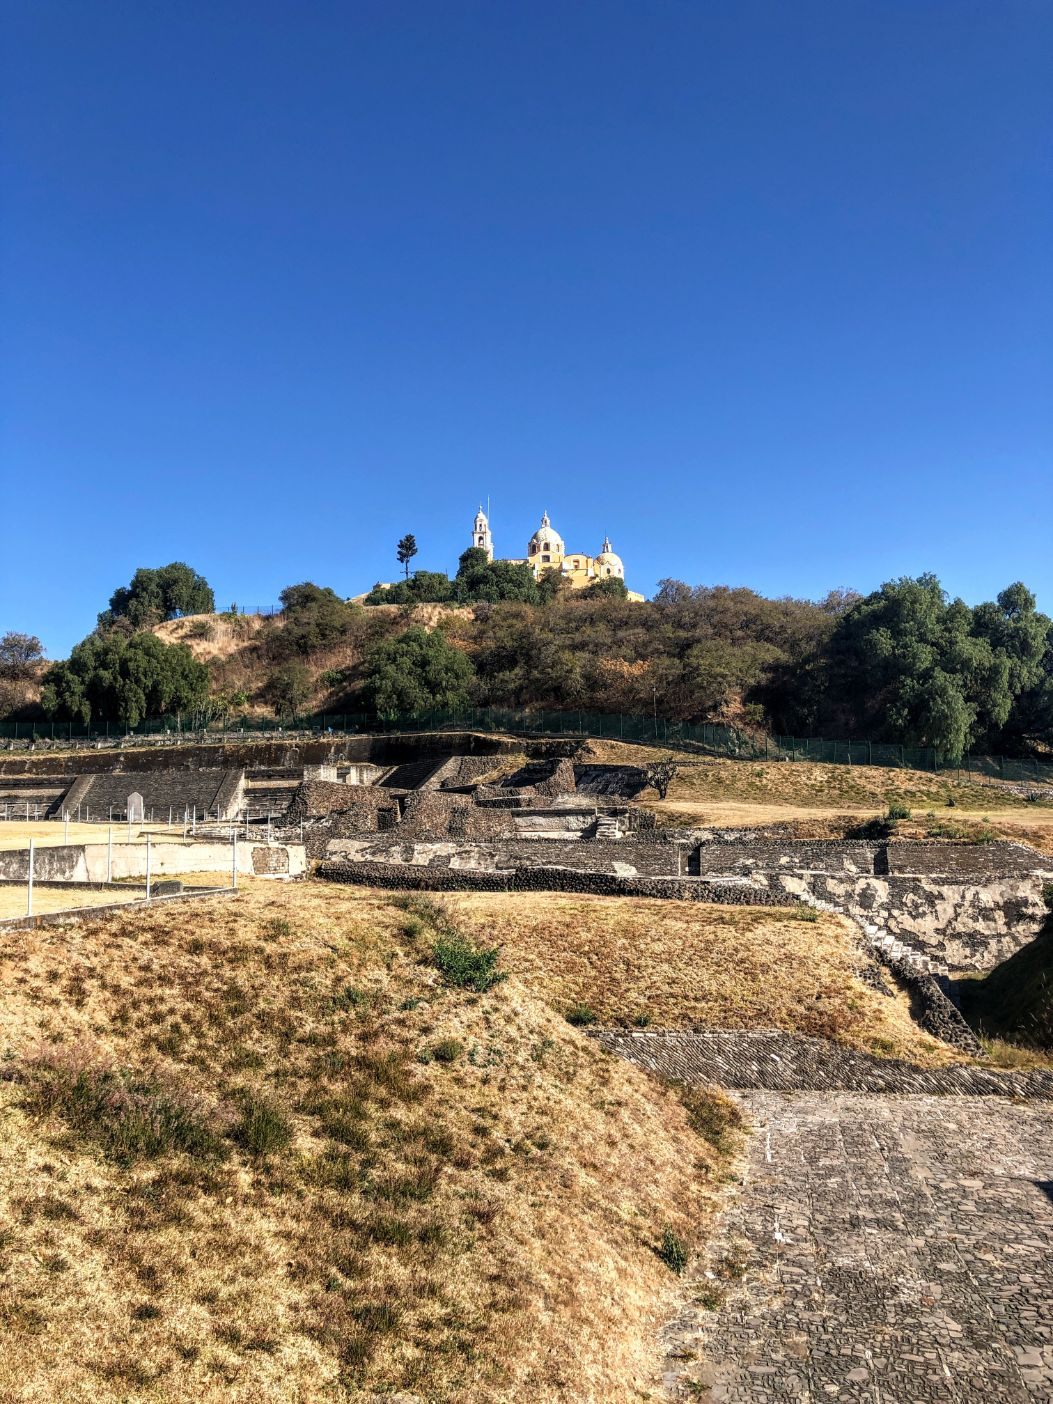 Cholula ruins at the base of the Cholula Pyramid